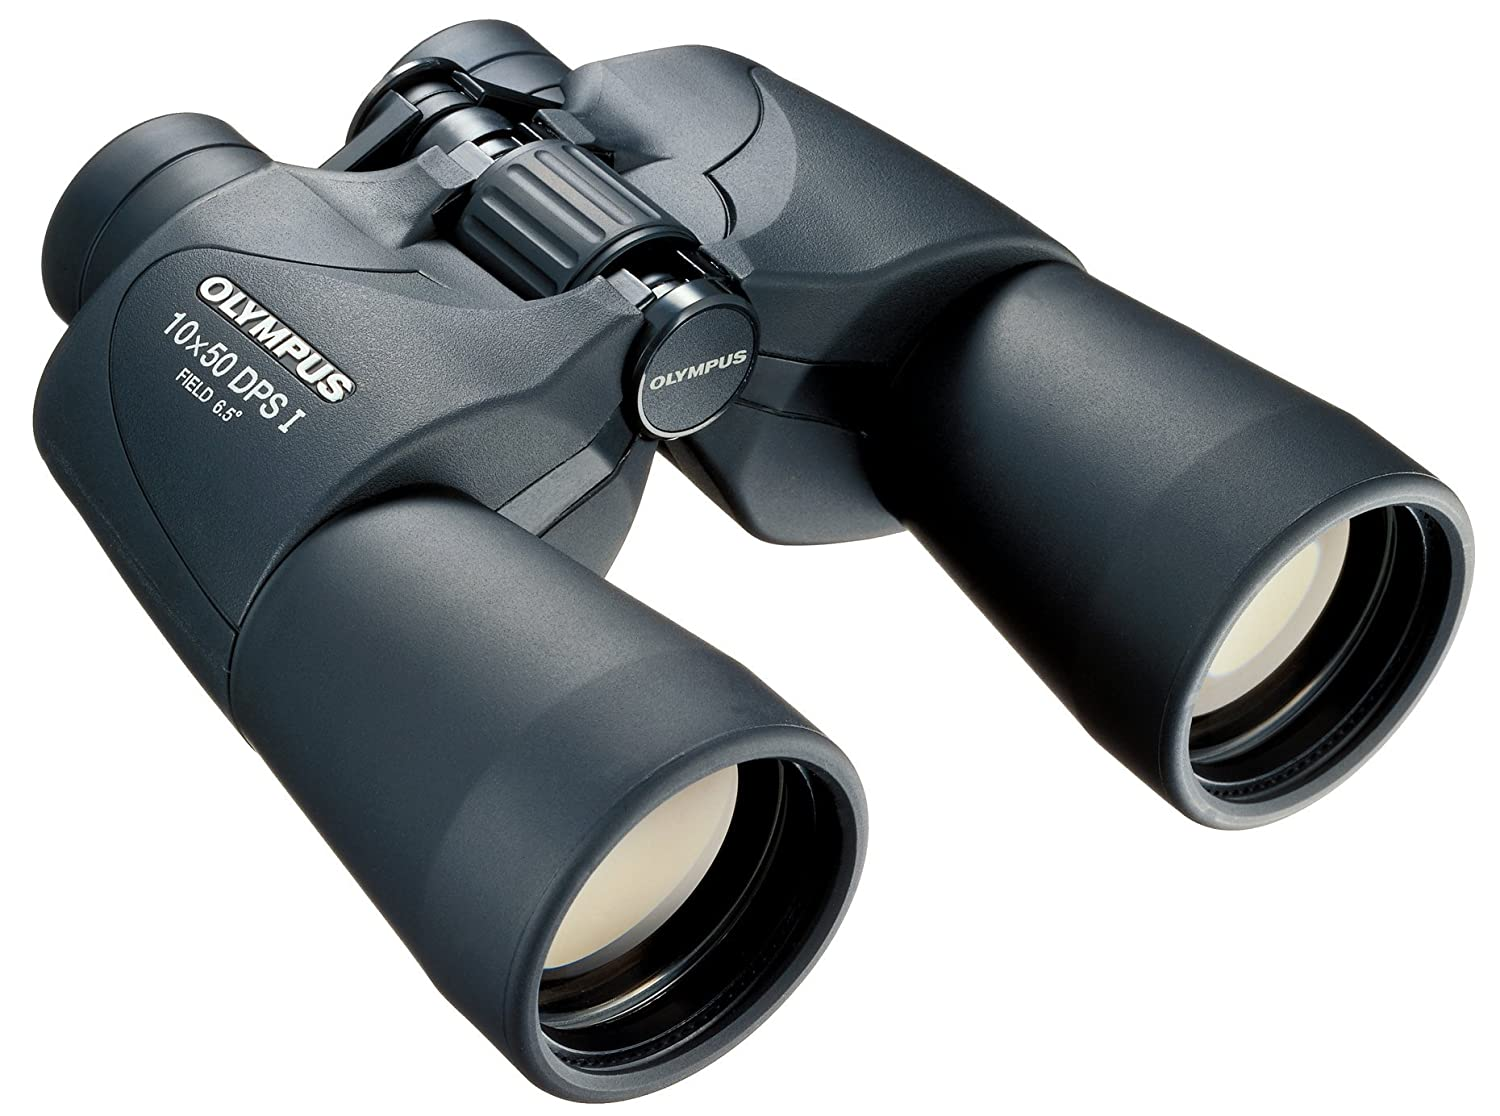 Binocular Cases & Accessories Fast Deliver Padded Case W/ Strap For Use W/ Olympus 118760 10 X 50 Dps-i Binoculars